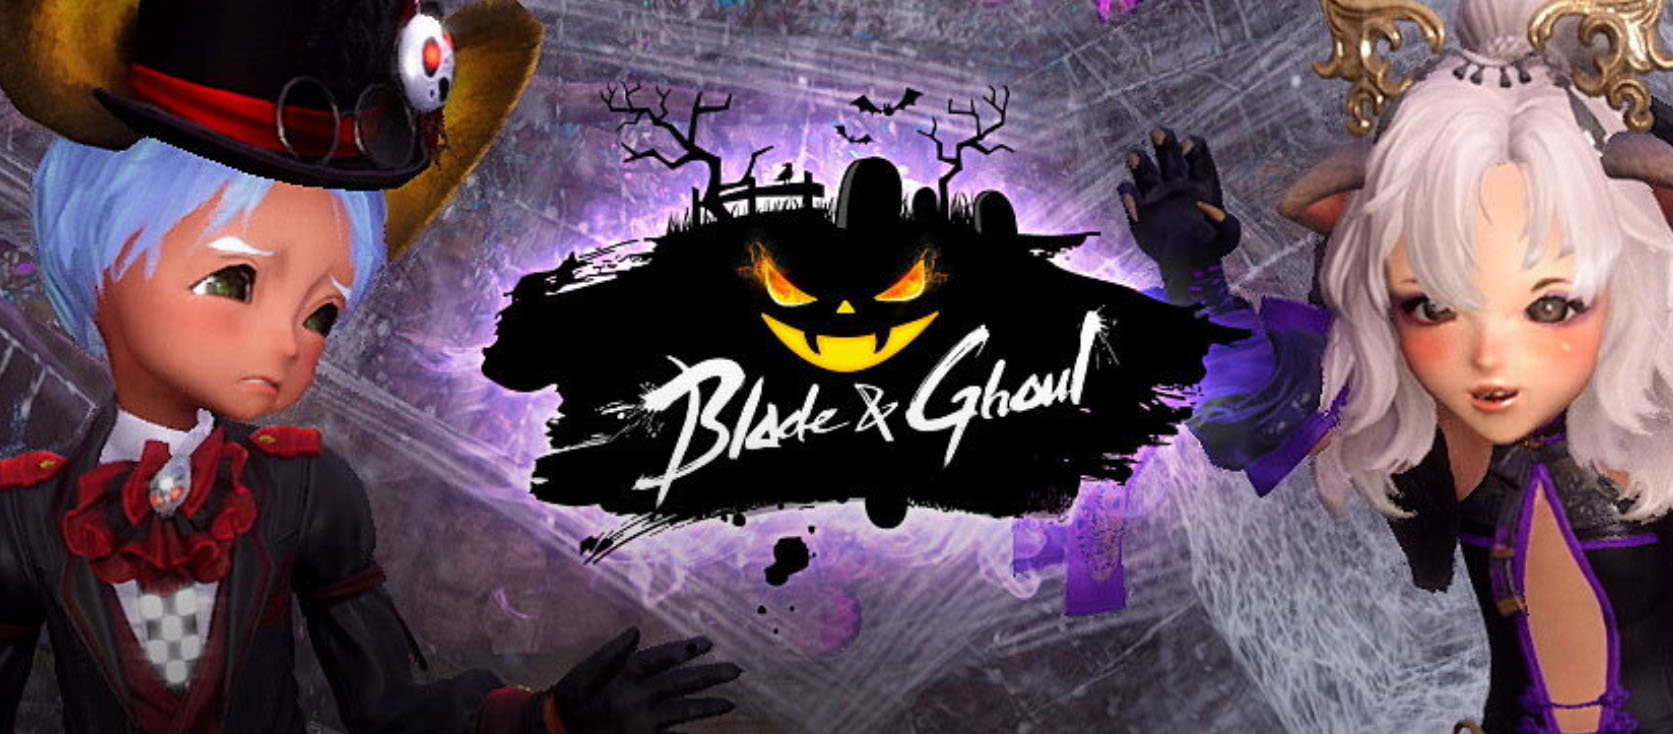 Blade & Soul's Blade & Ghoul Halloween Event is Live